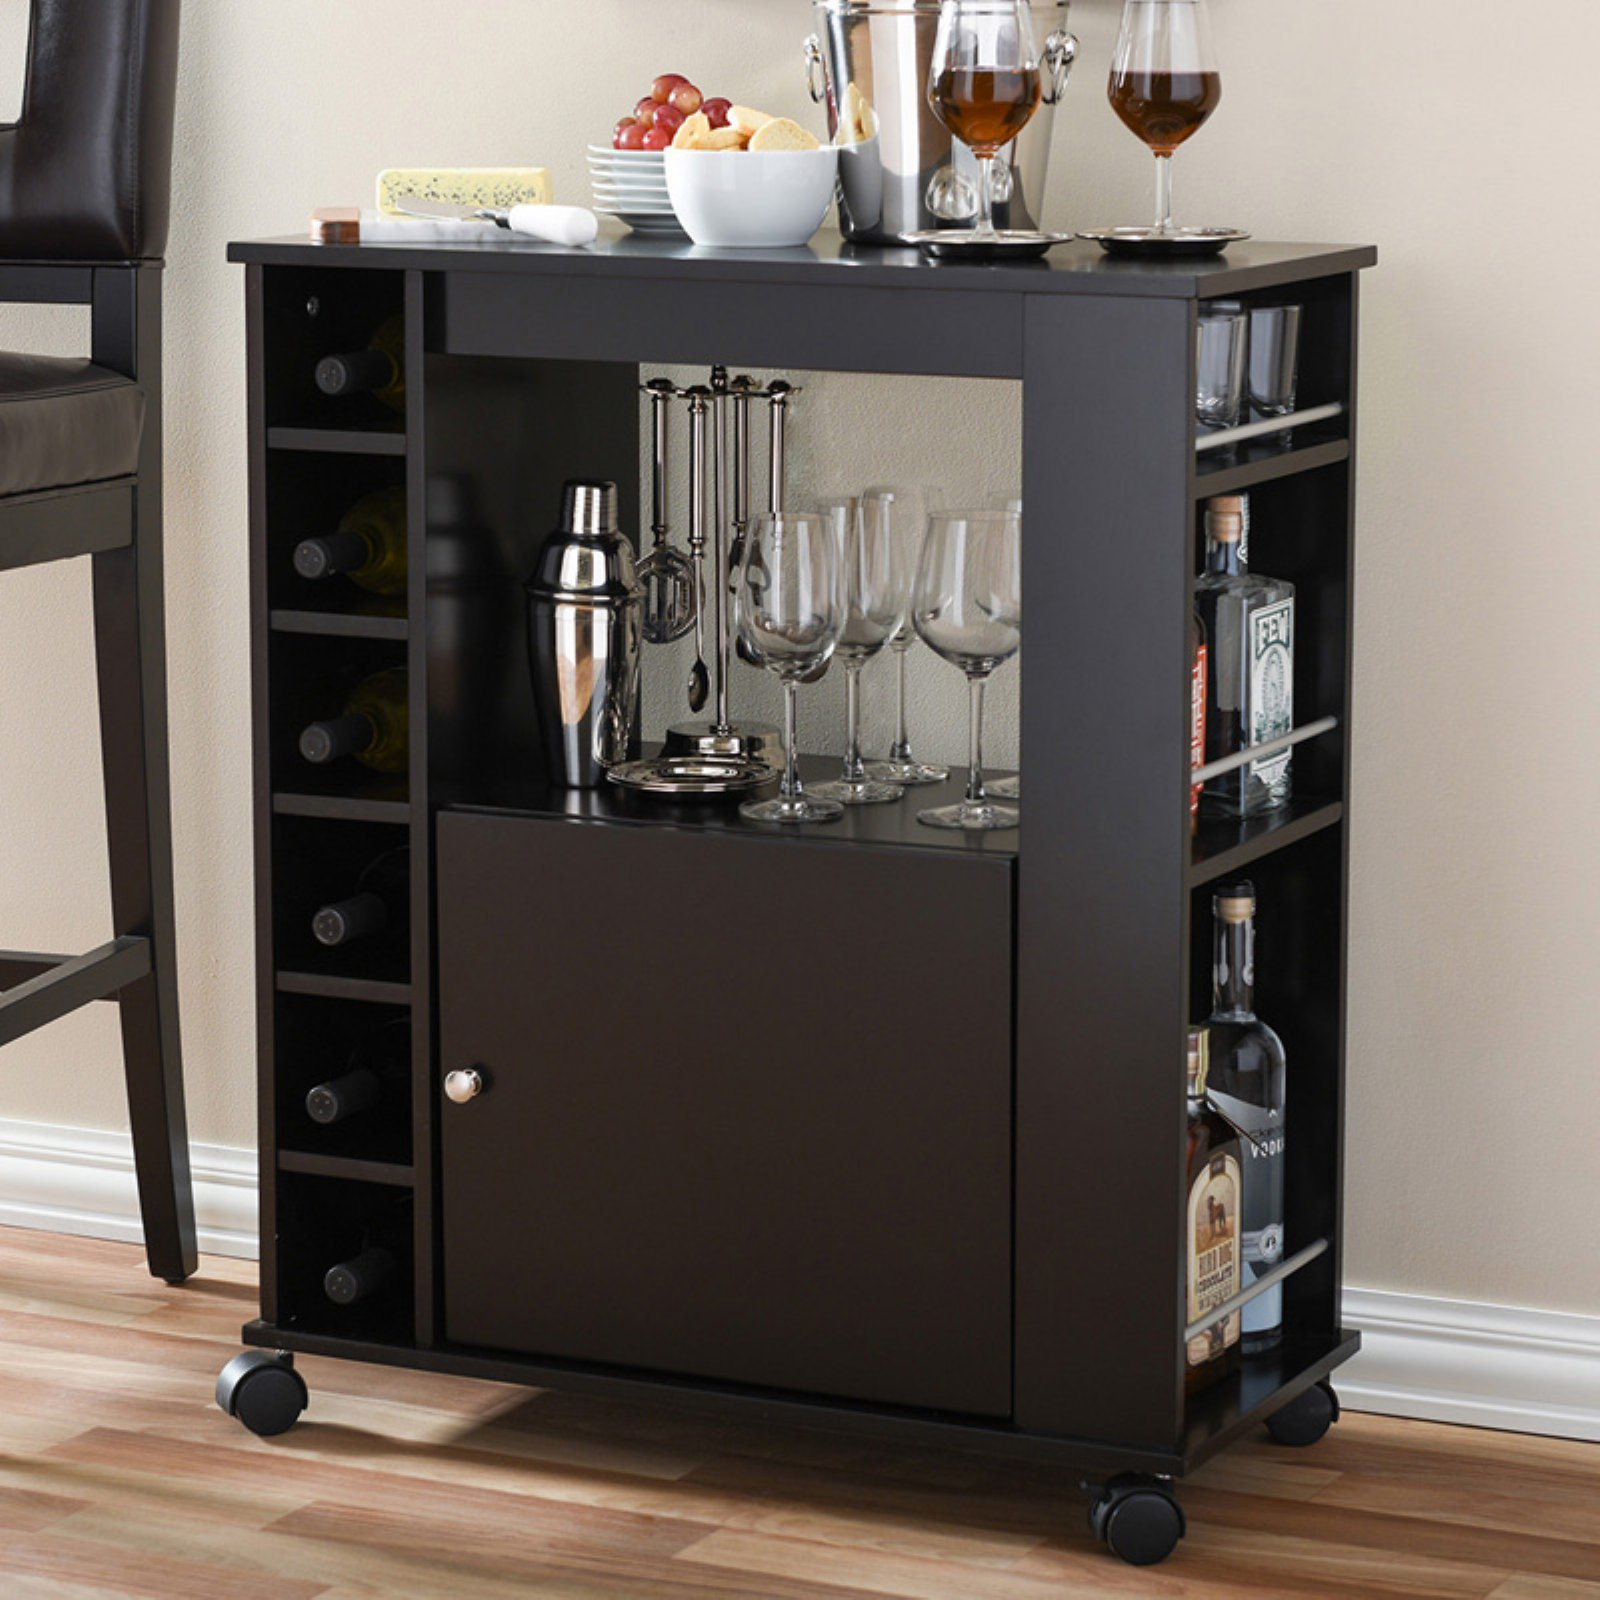 Baxton Studio Ontario Bar and Wine Cabinet by Wholesale Interiors